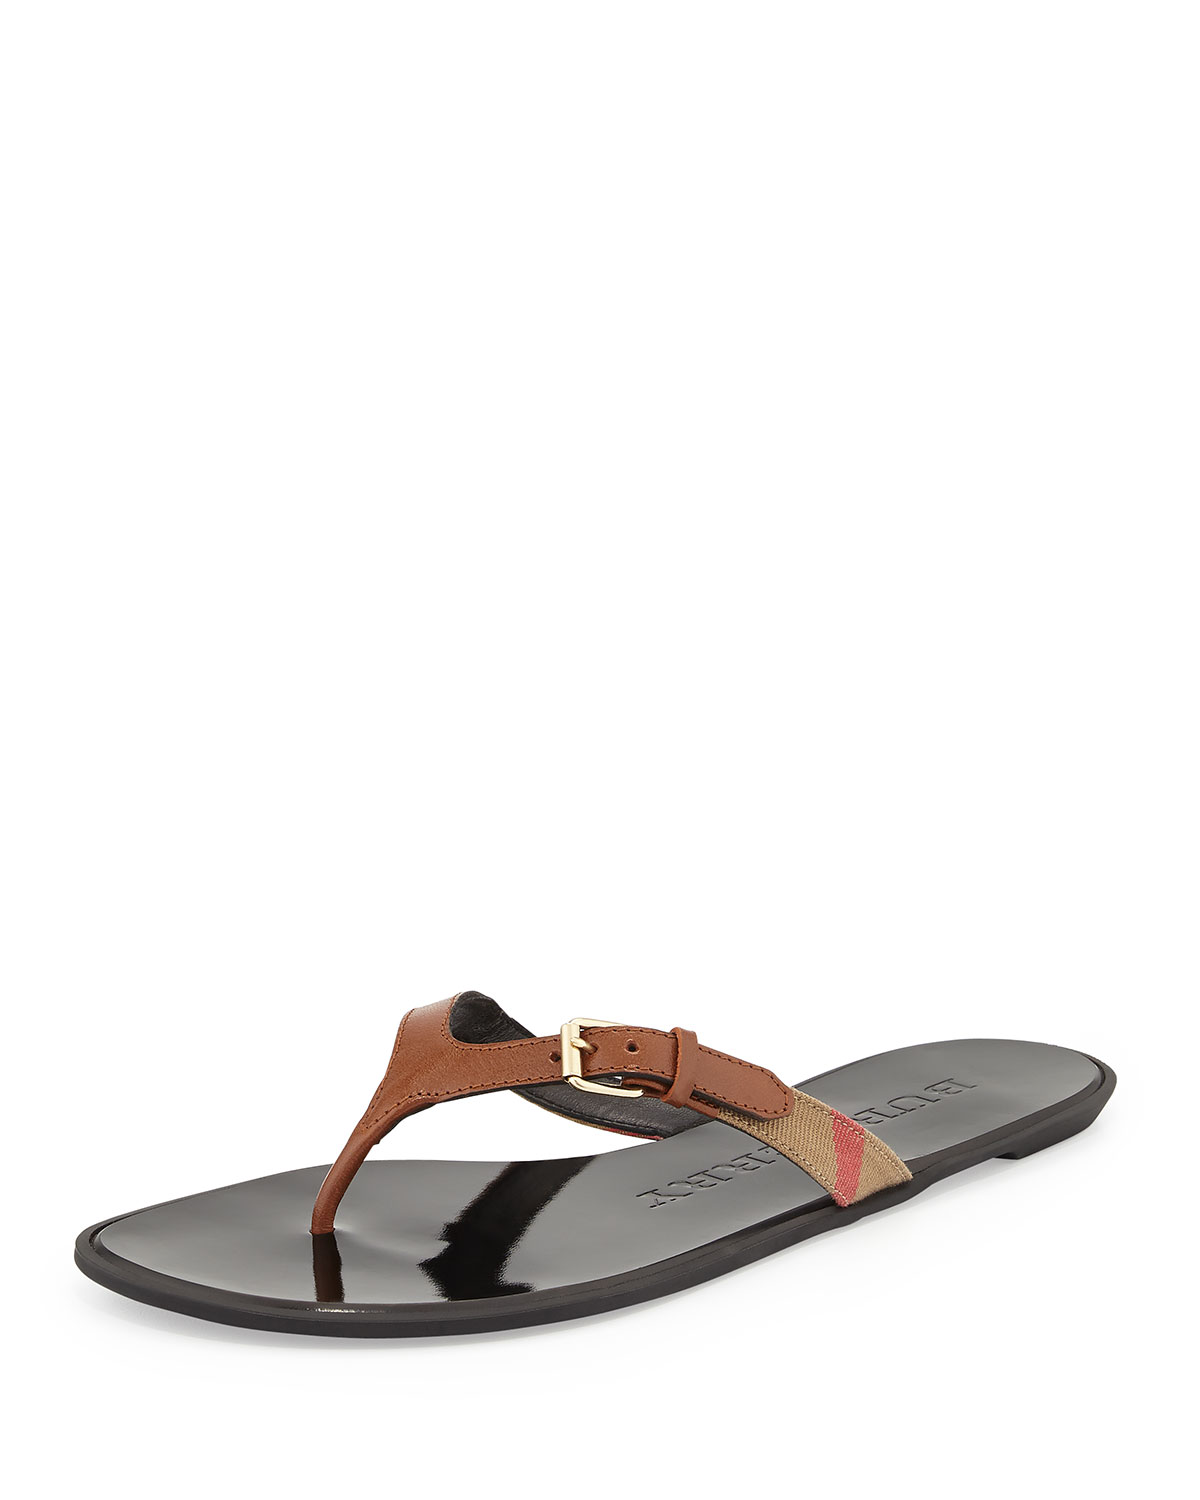 d4a8f1fb776 Burberry Masie Belted Check Thong Sandal